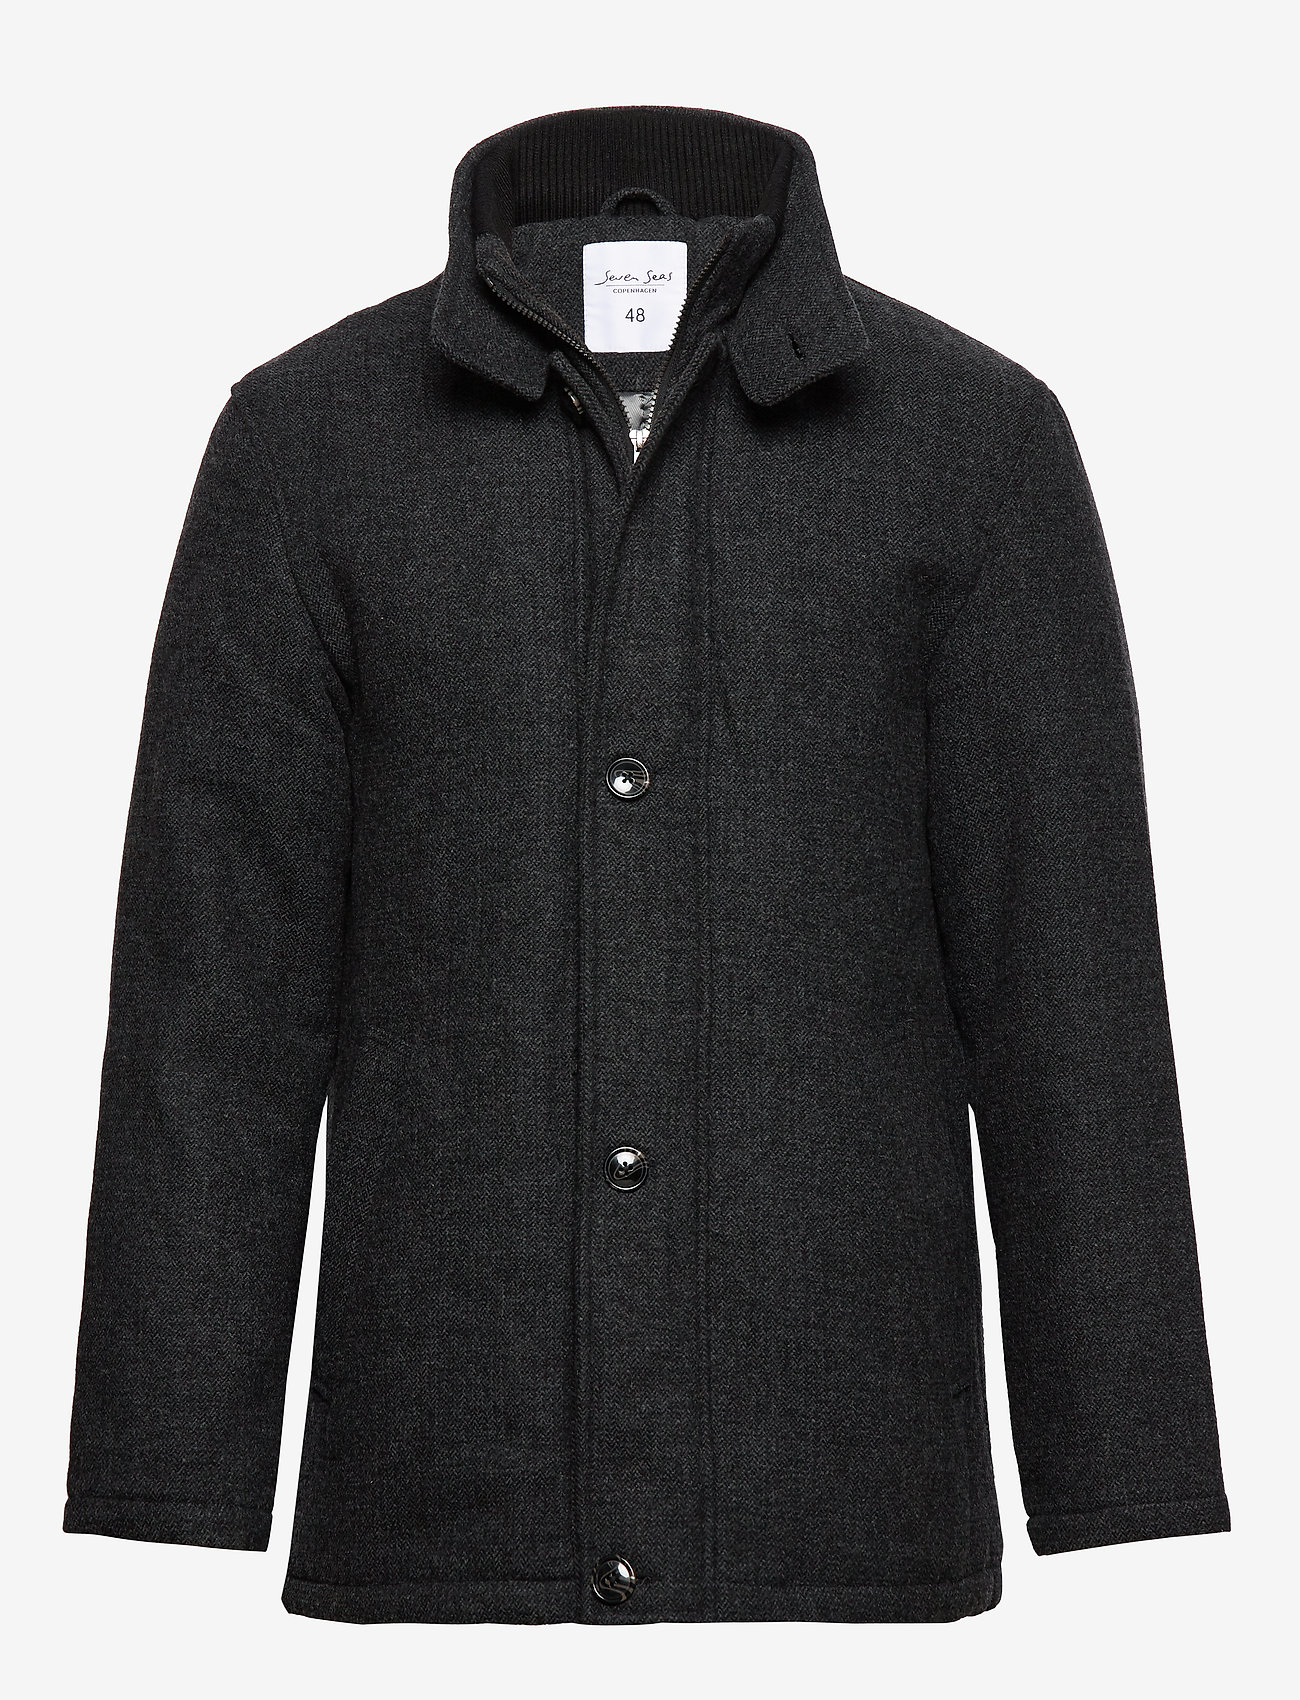 Seven Seas Copenhagen - HARRISON JACKET - wool jackets - dark grey - 0